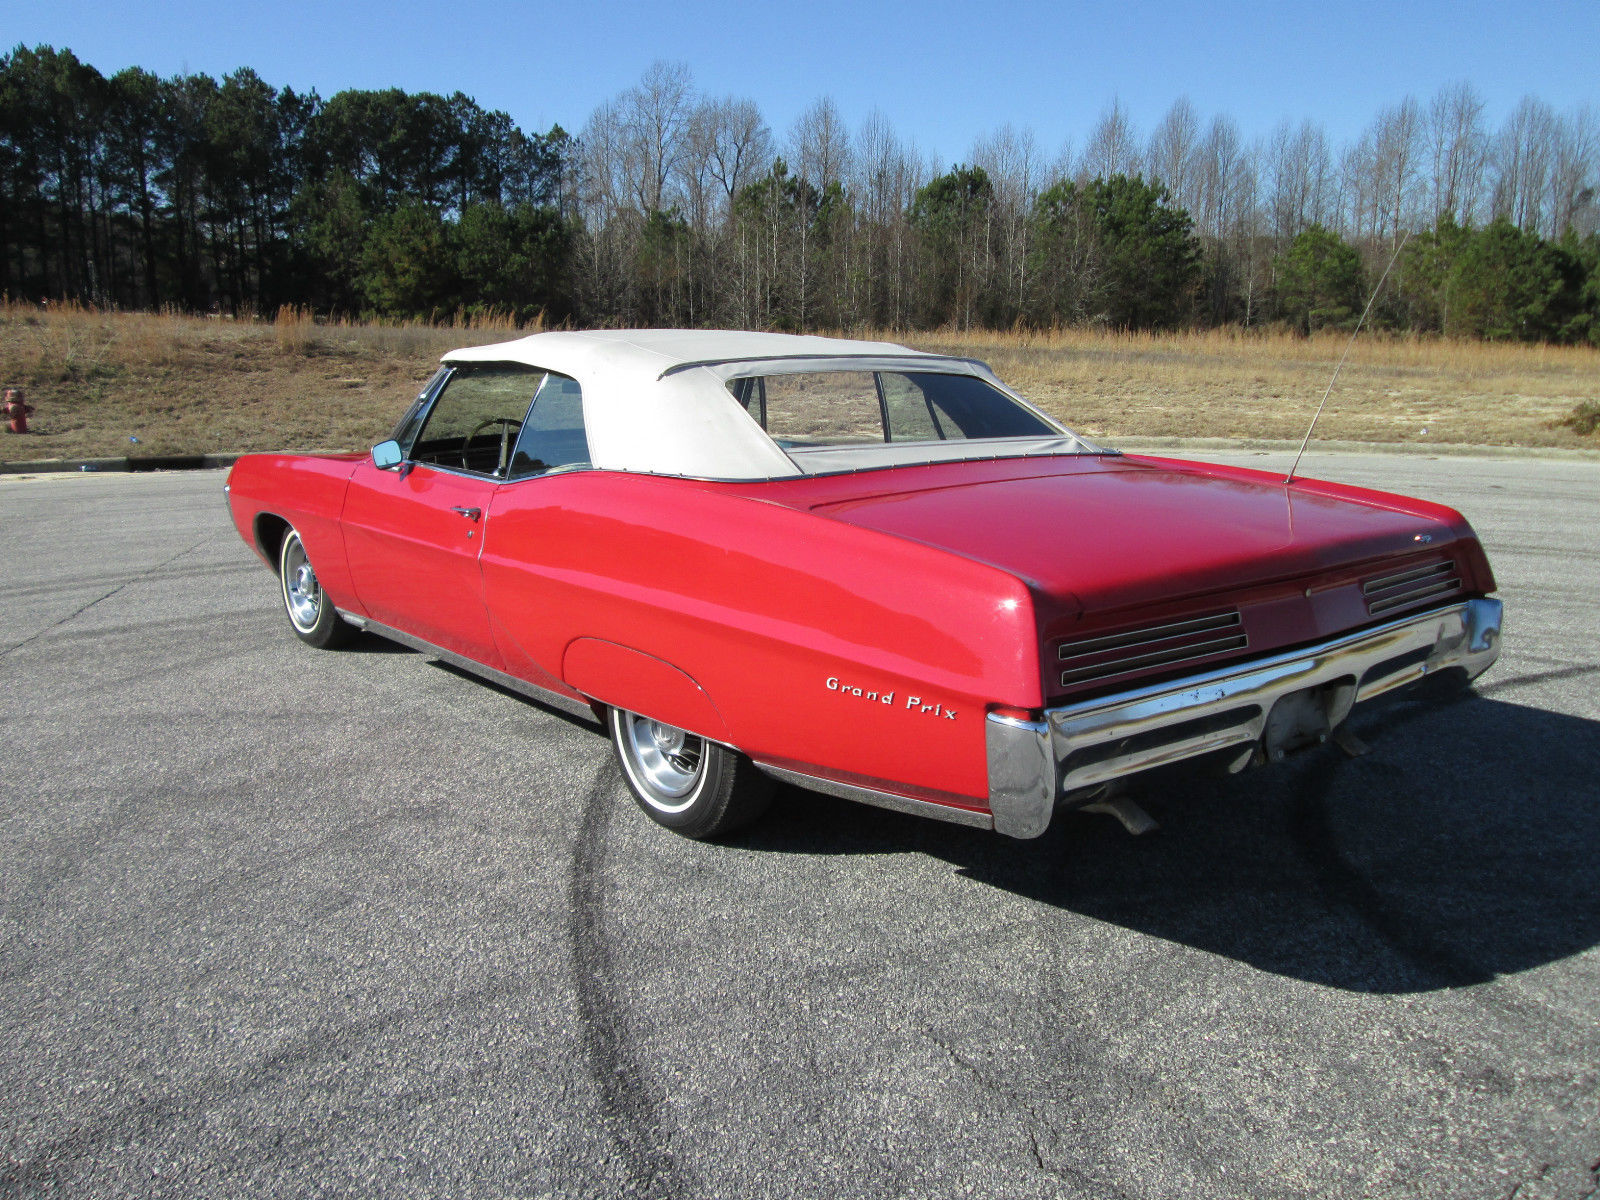 1967 pontiac grand prix convertible loaded with options low reserve 1969 Pontiac Grand Prix Convertible 1967 pontiac grand prix convertible loaded with options low reserve